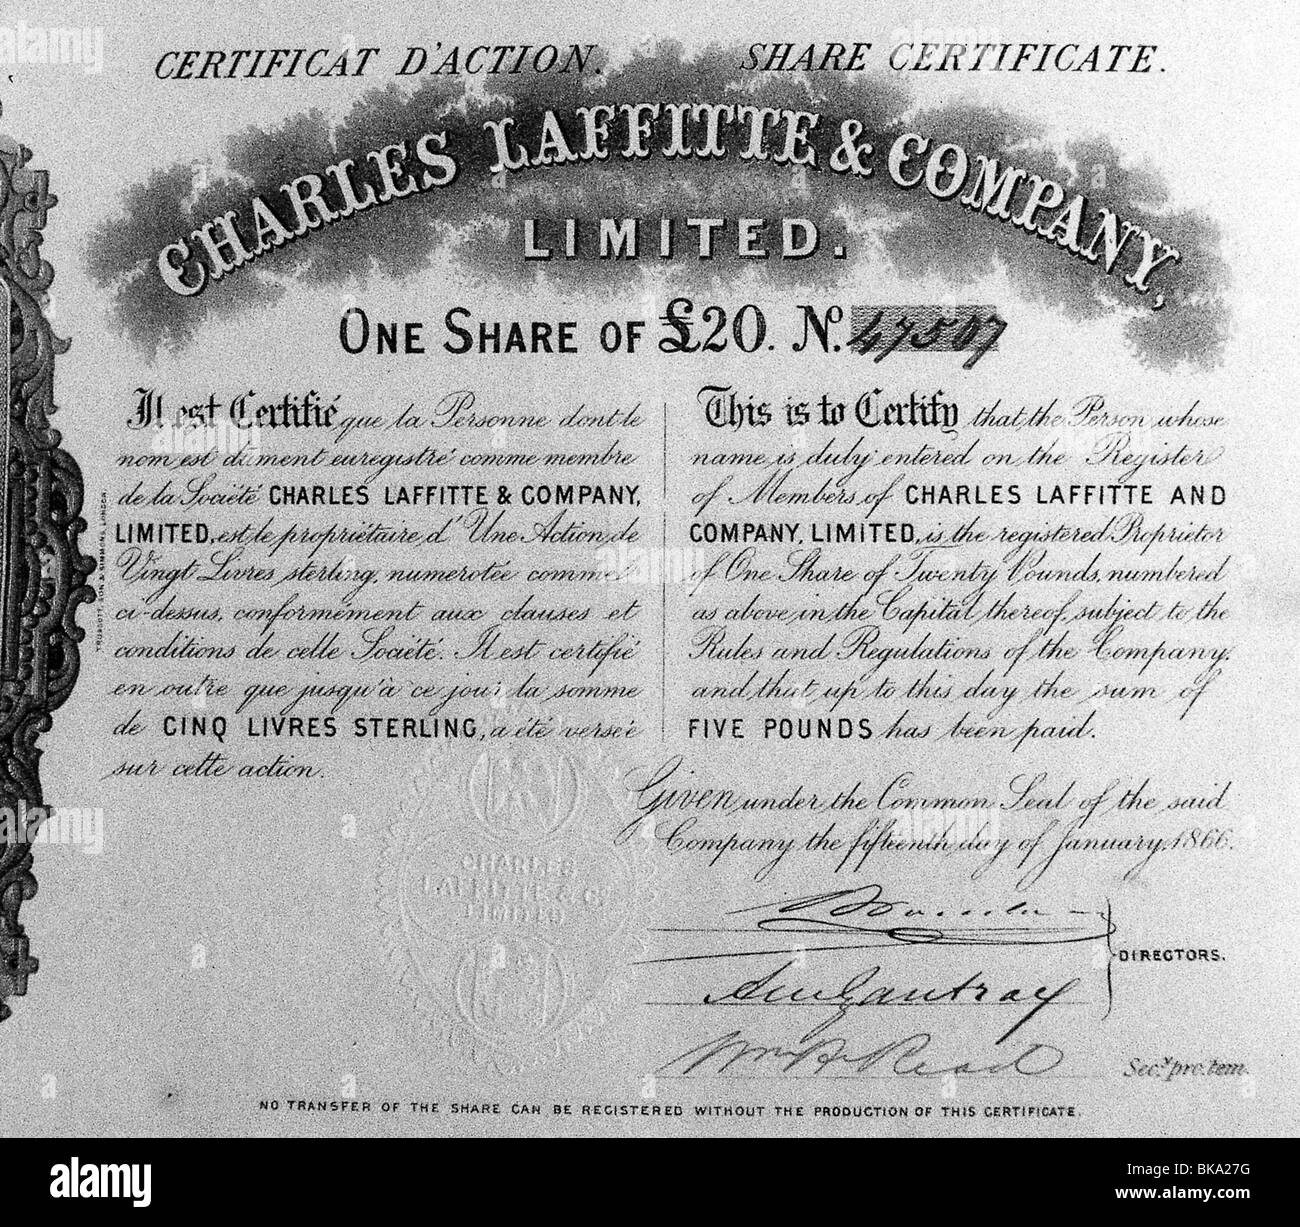 money / finance, stocks, share certificate of Charles Laffitte and ...